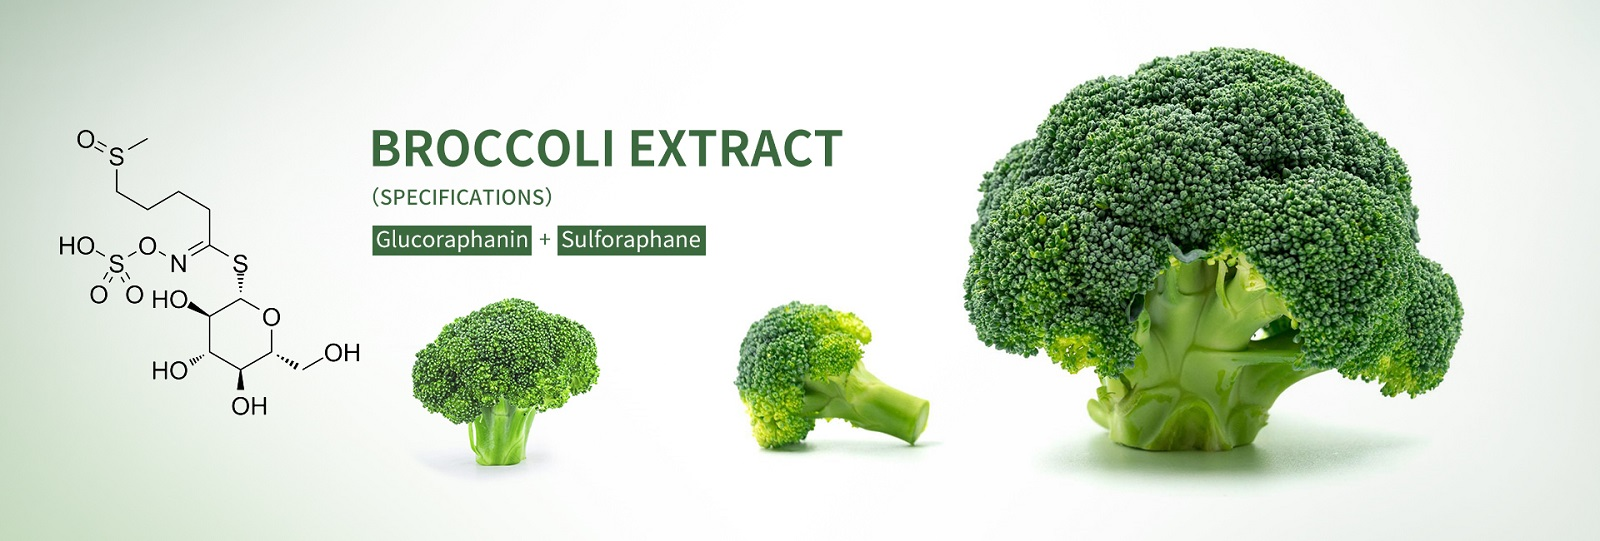 broccoli extract glucoraphanin Sulforaphane